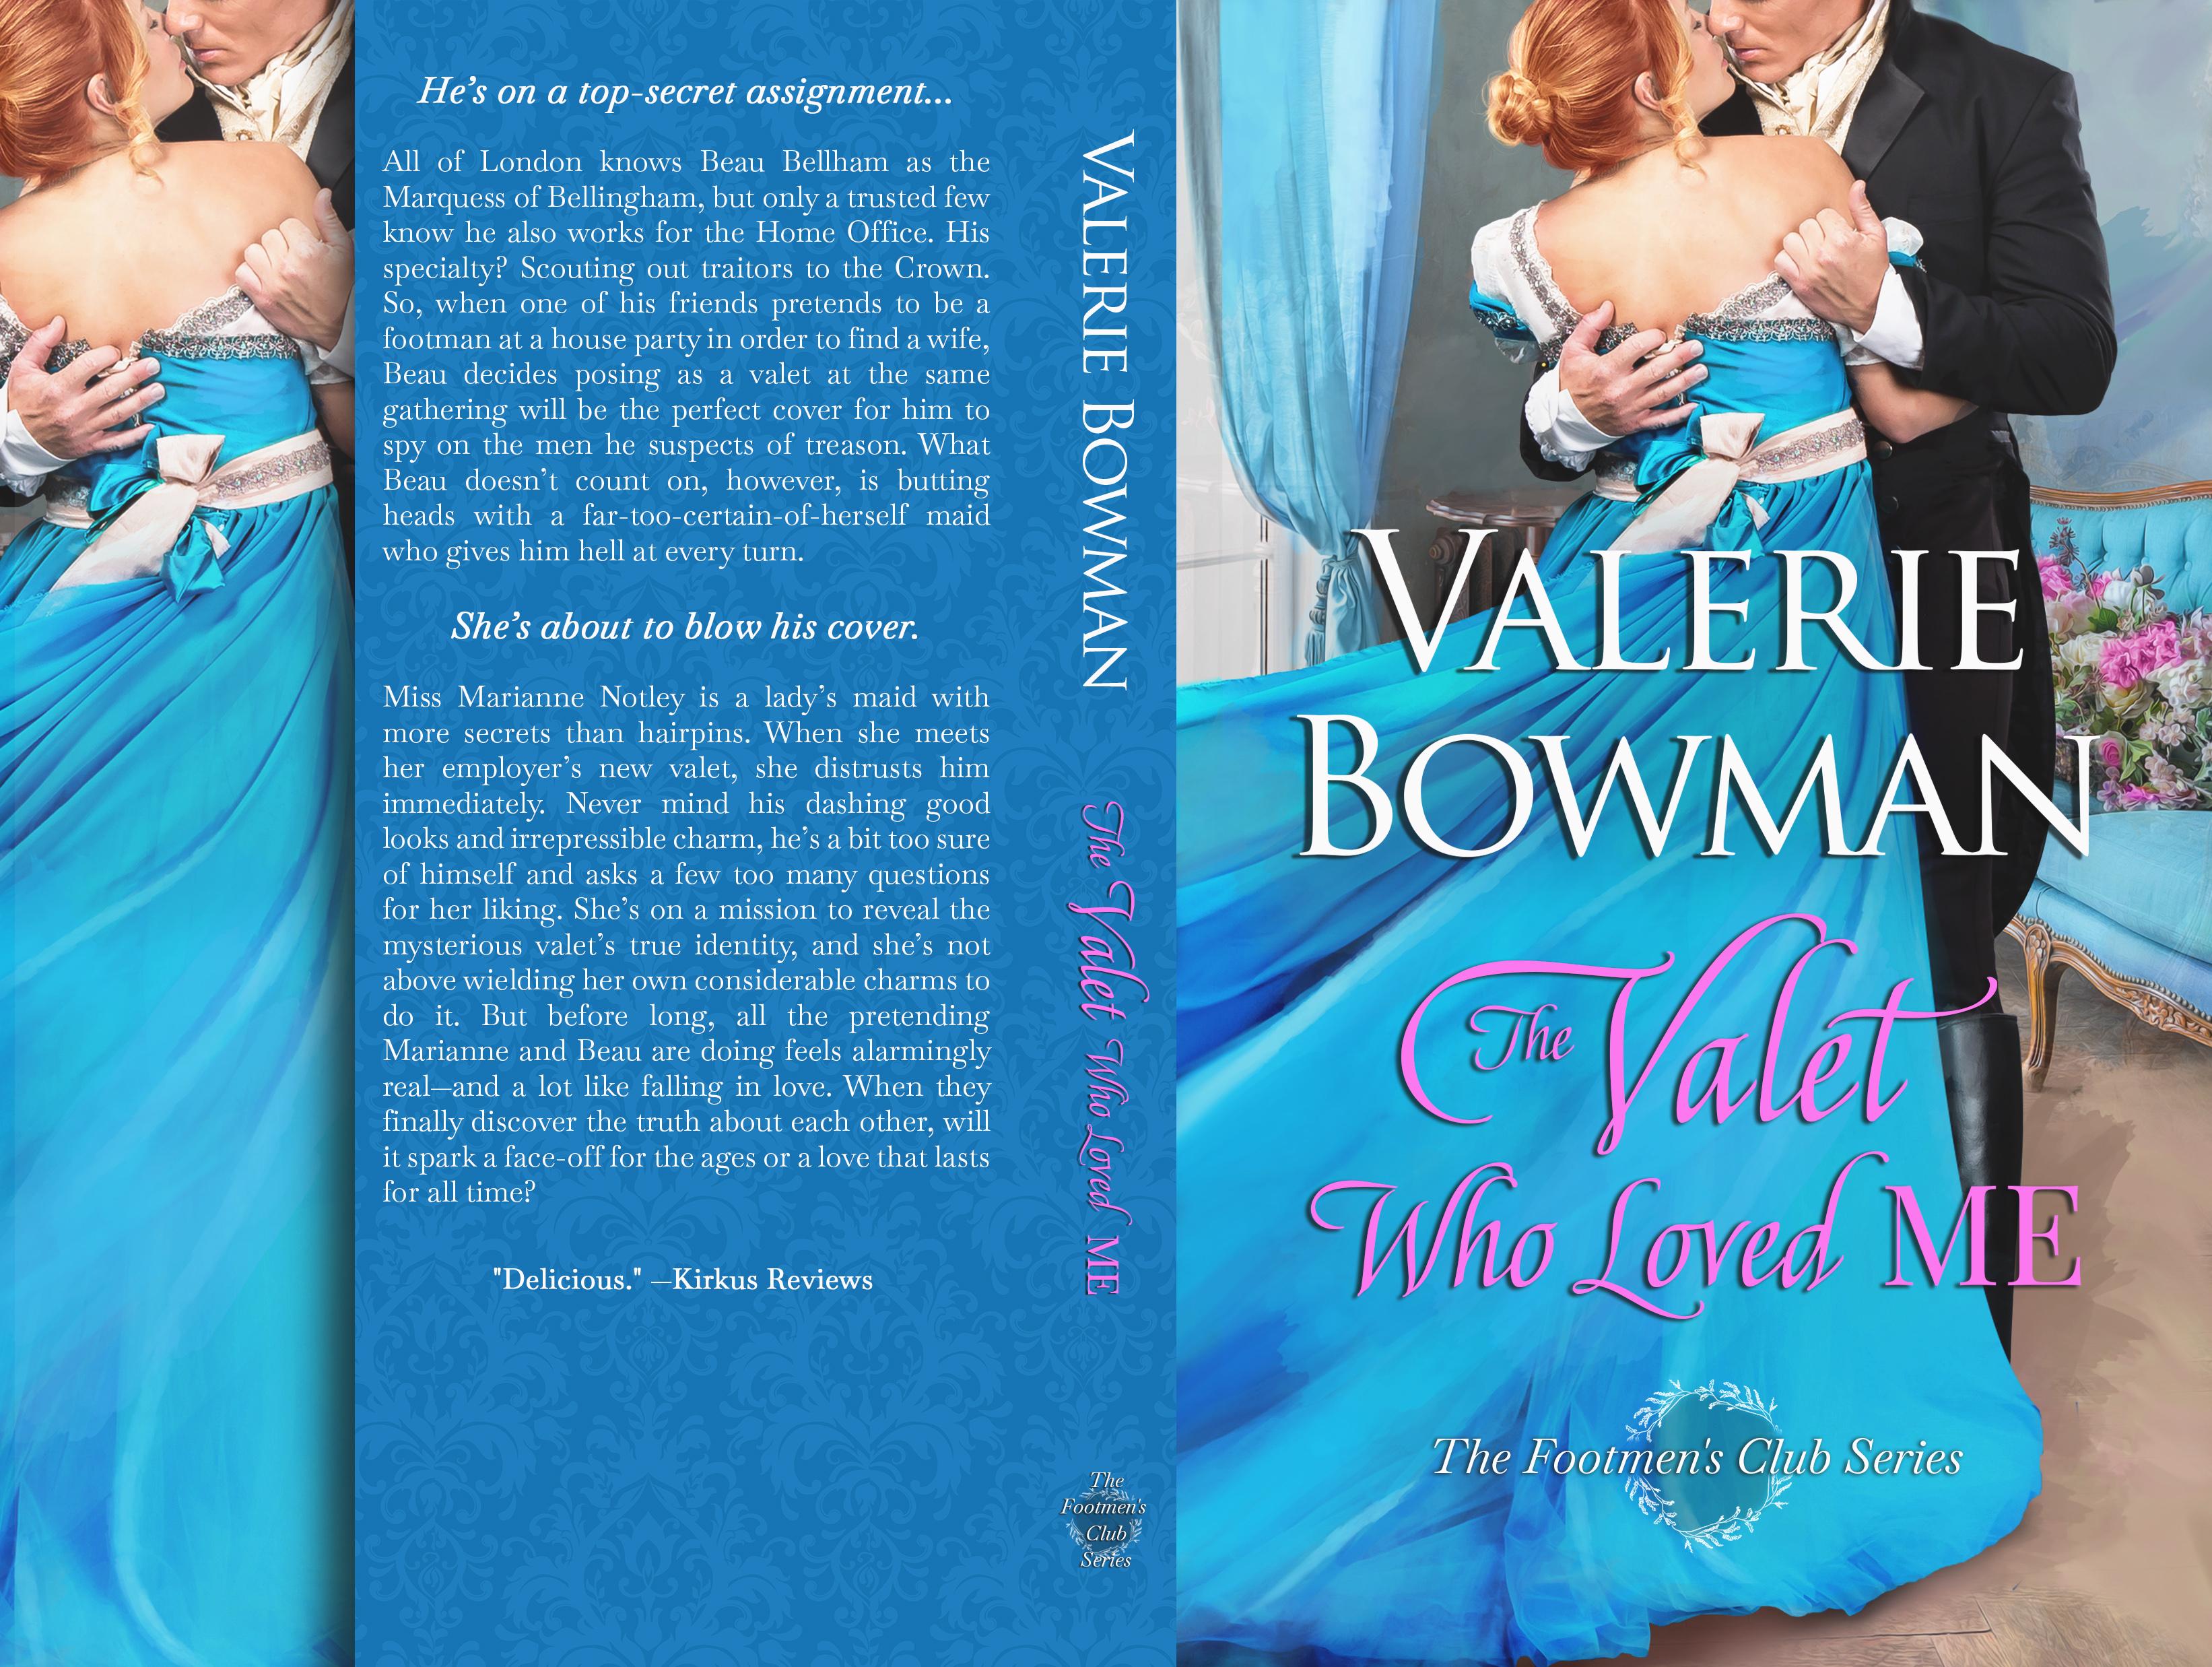 The Valet Who Loved Me 5x8_Cream_278